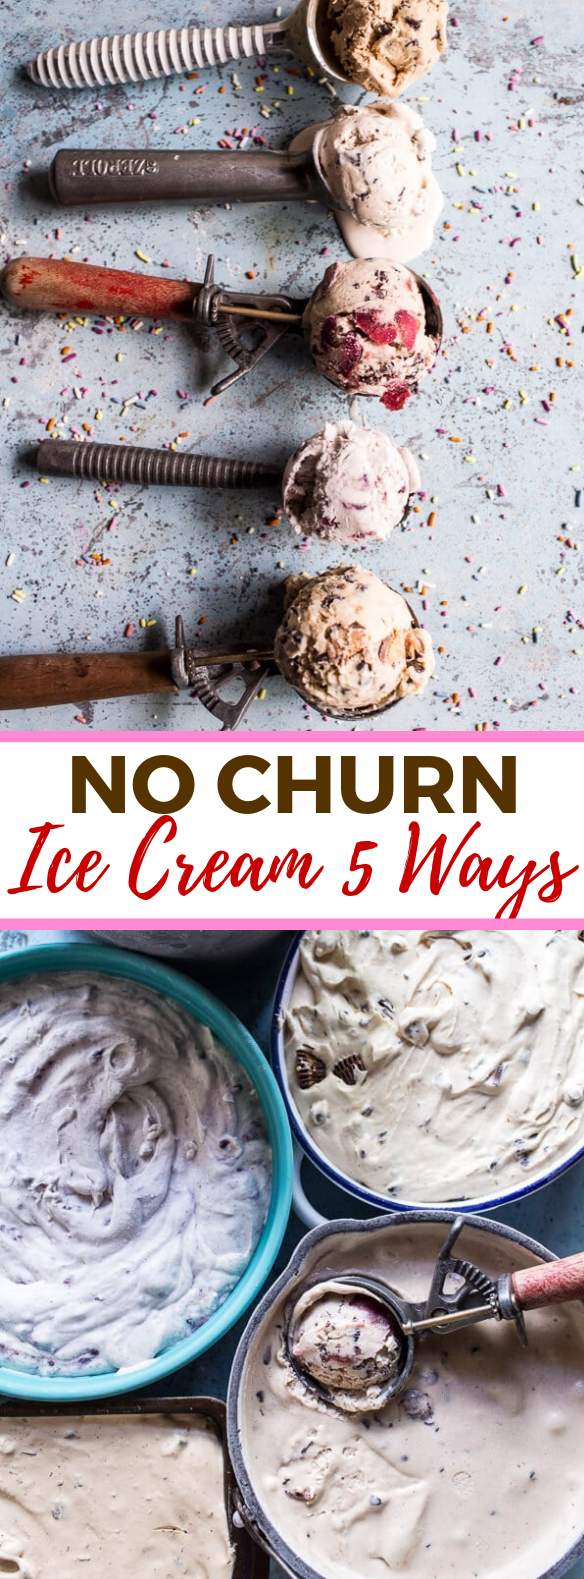 No Churn Ice Cream 5 Ways #dessert #chocolate